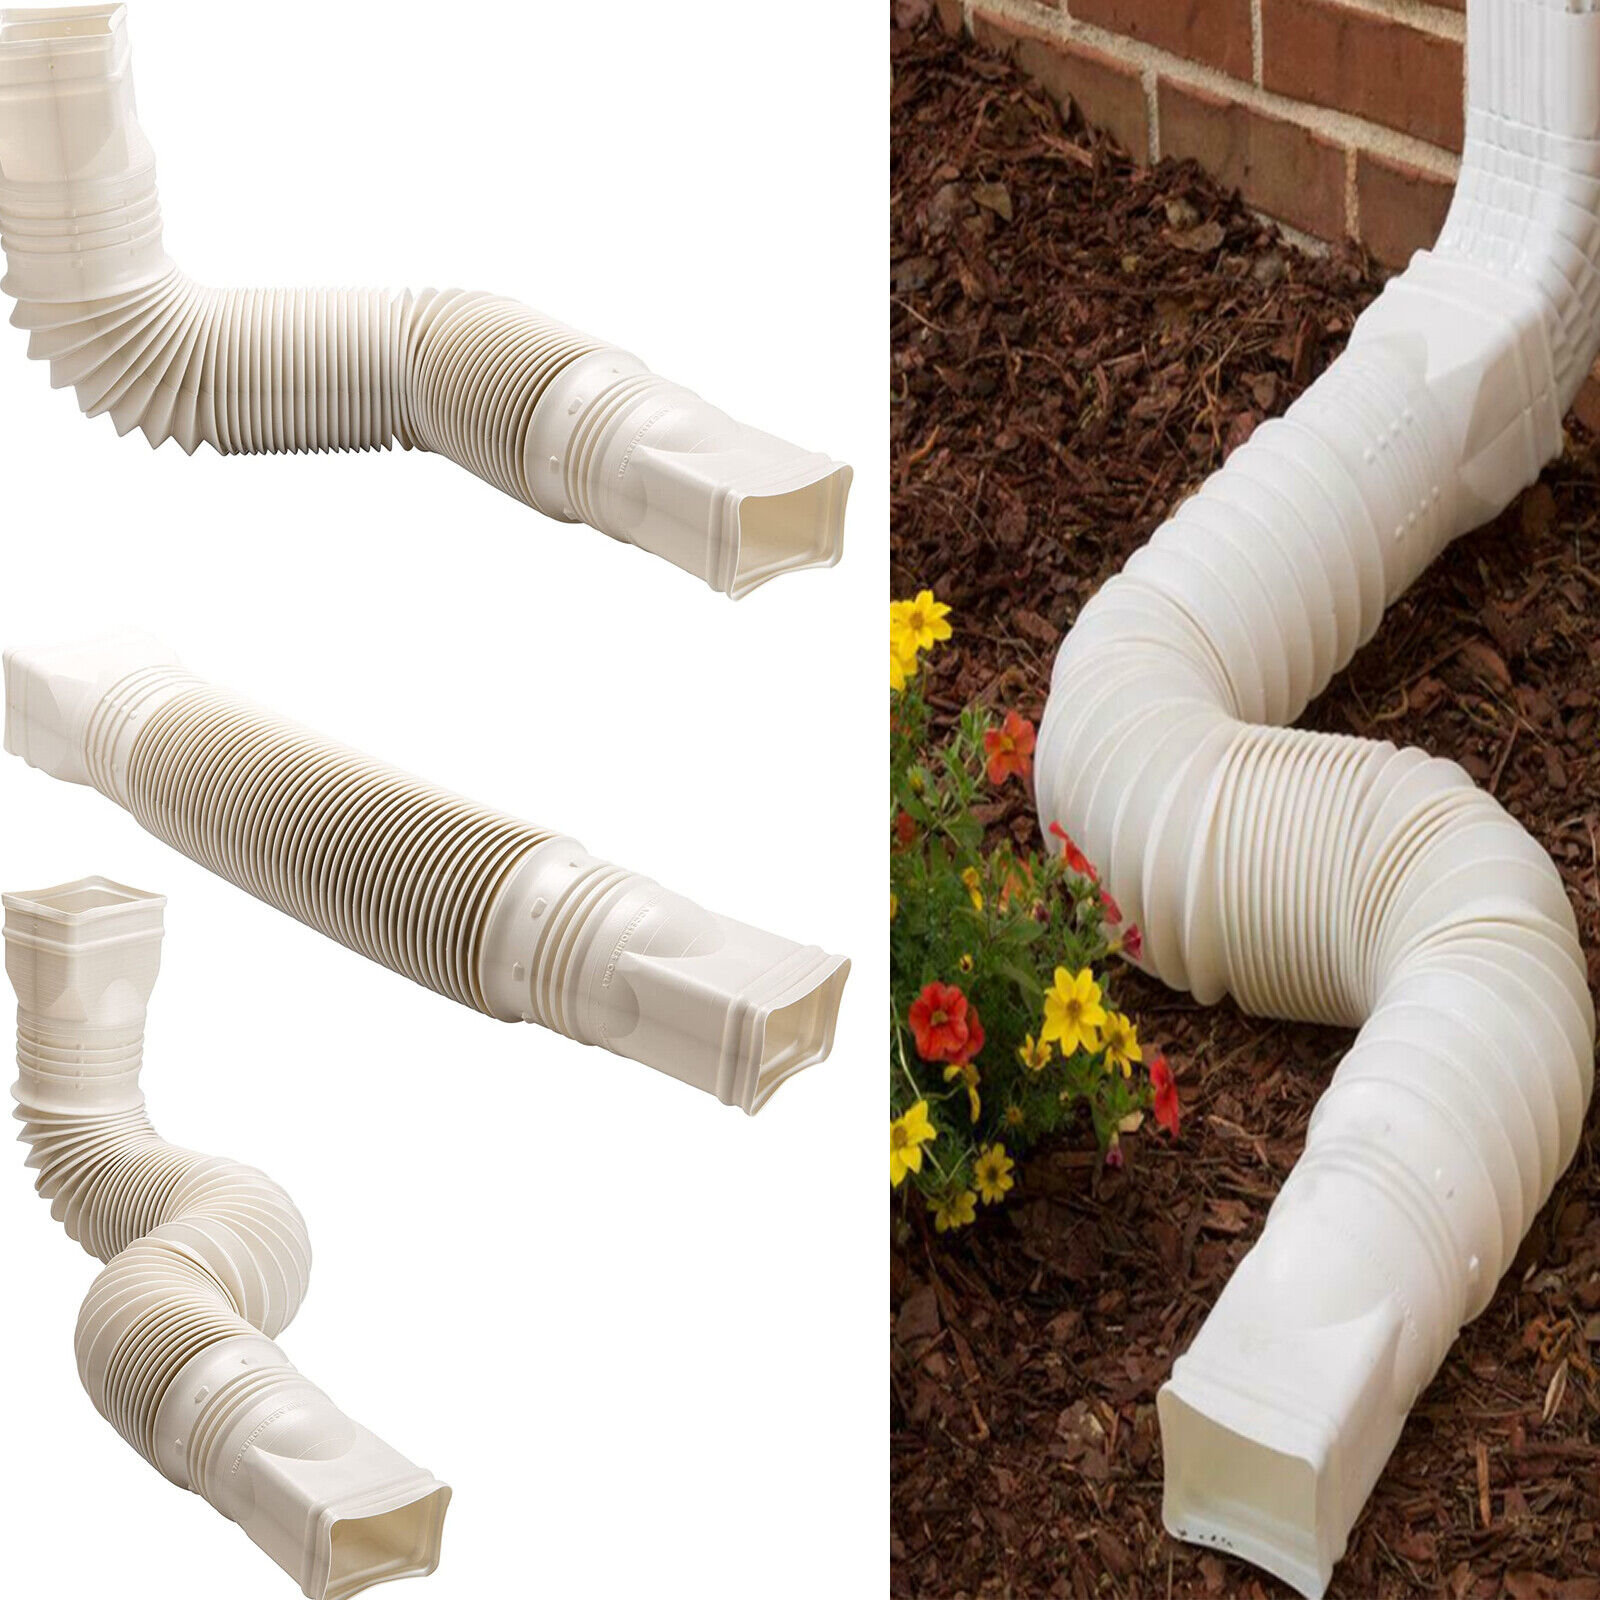 Flex Drain Downspout Extension Rain Pipe Spout Gutter Flexib